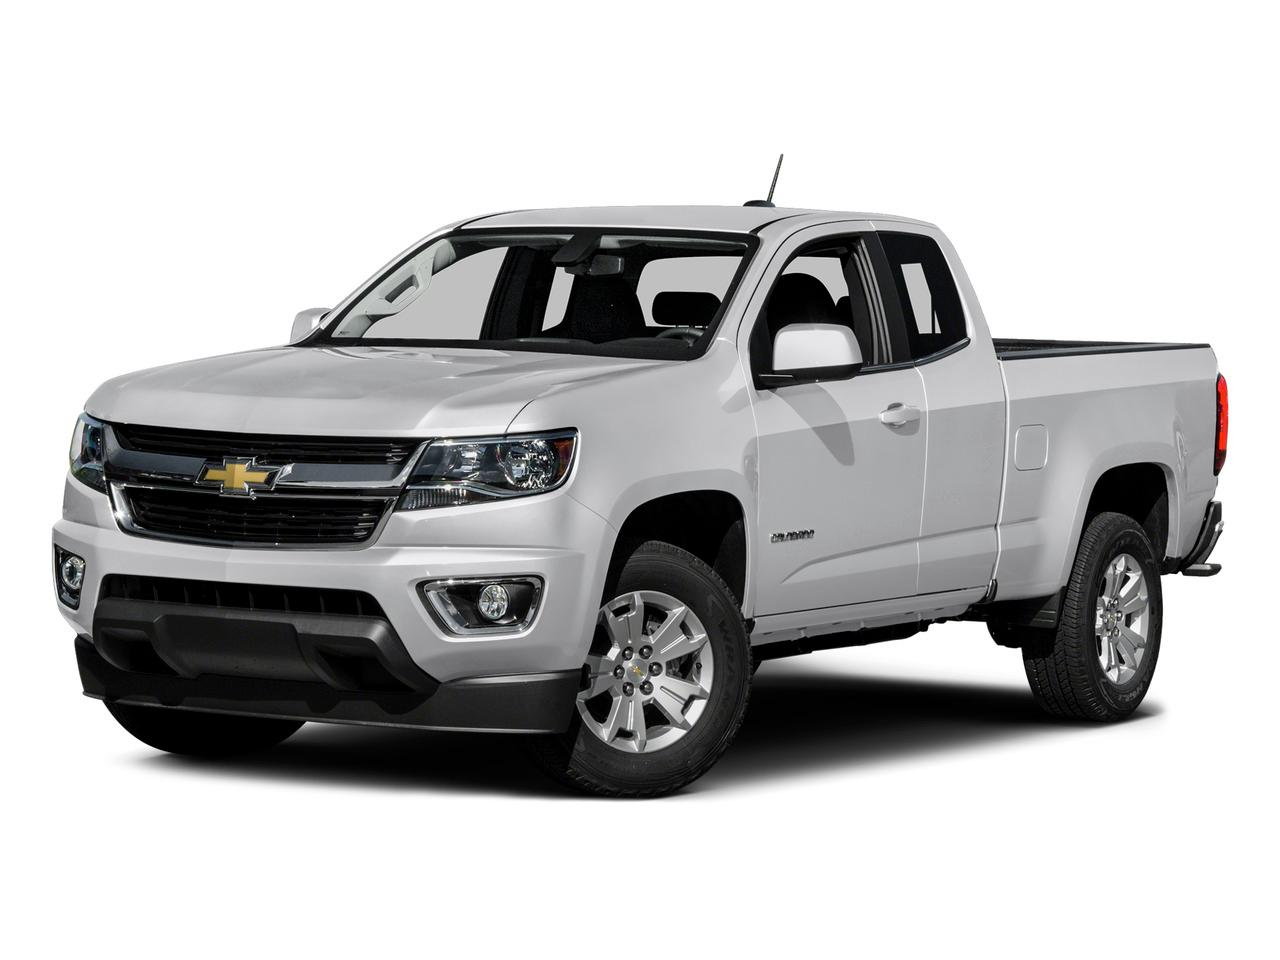 2015 Chevrolet Colorado Vehicle Photo in Westlake, OH 44145